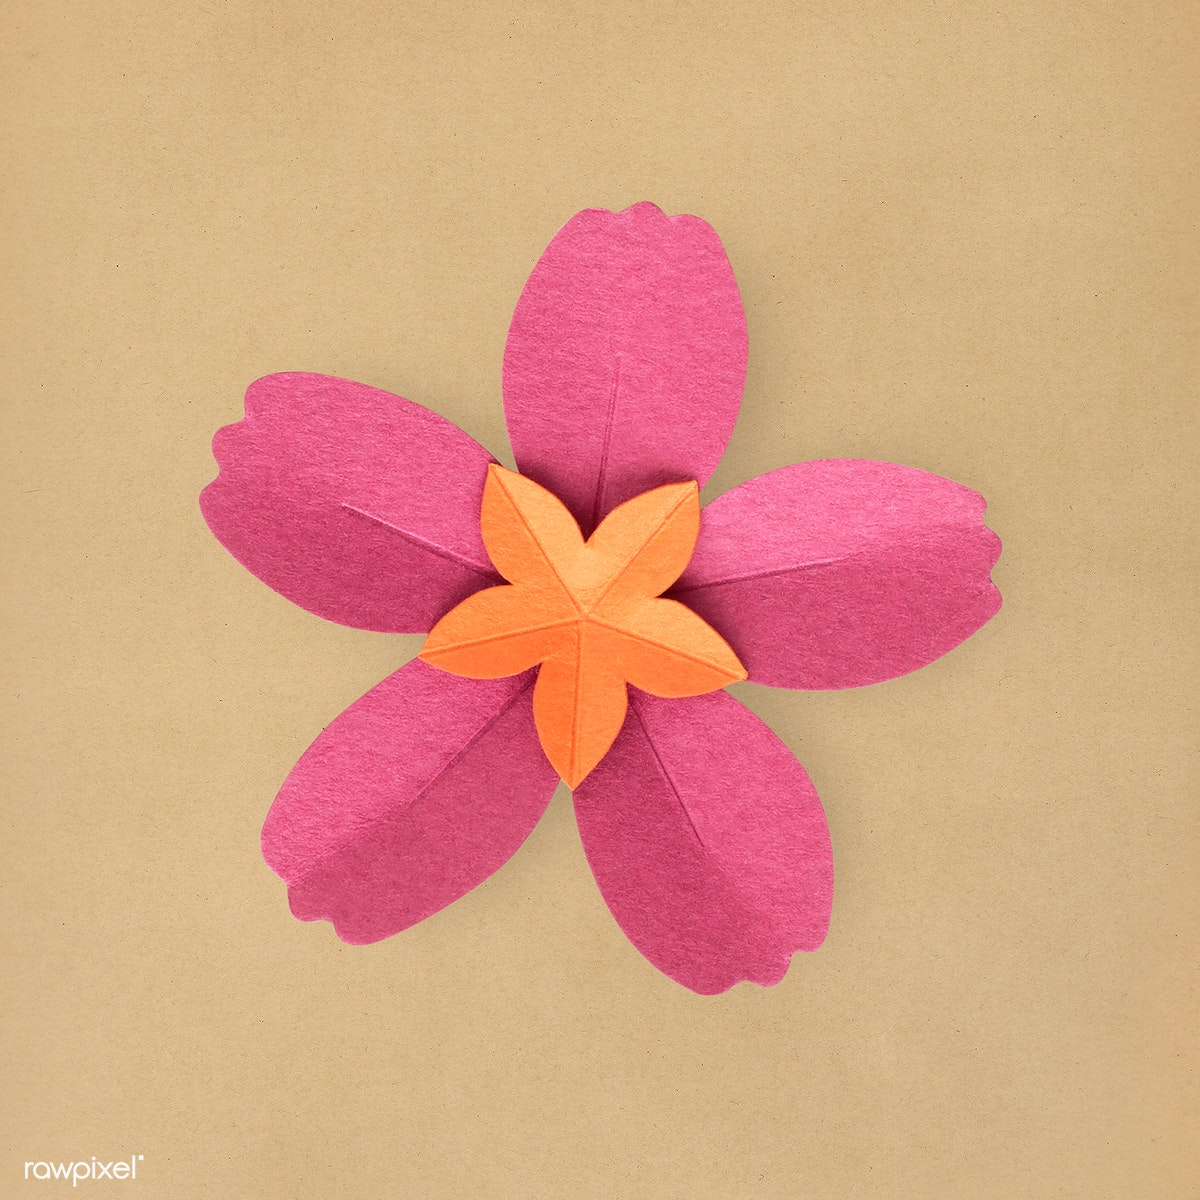 Download Premium Psd About Beige Cut Out And Flower 261892